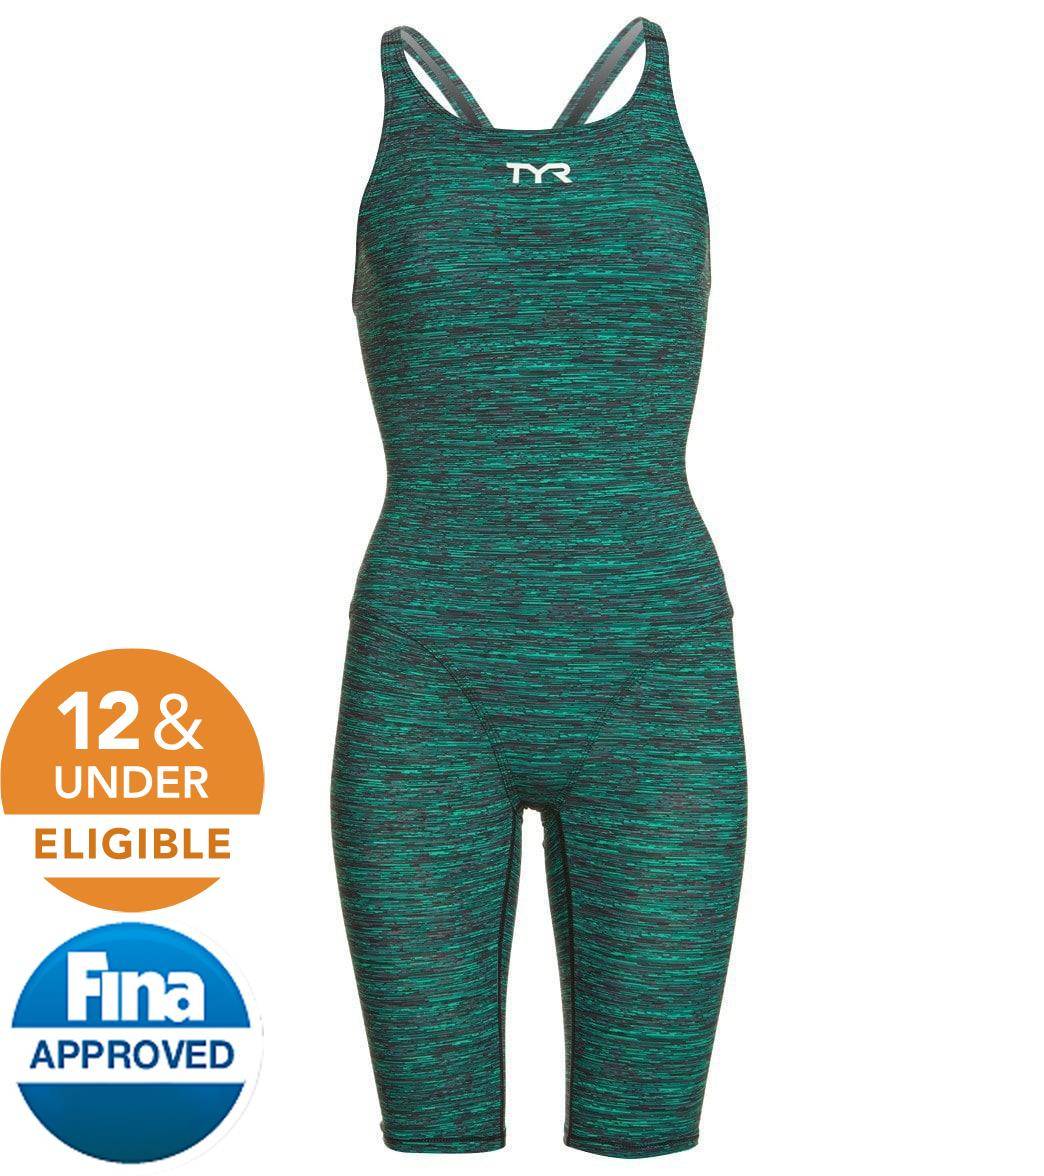 TYR Thresher women's budget tech suit